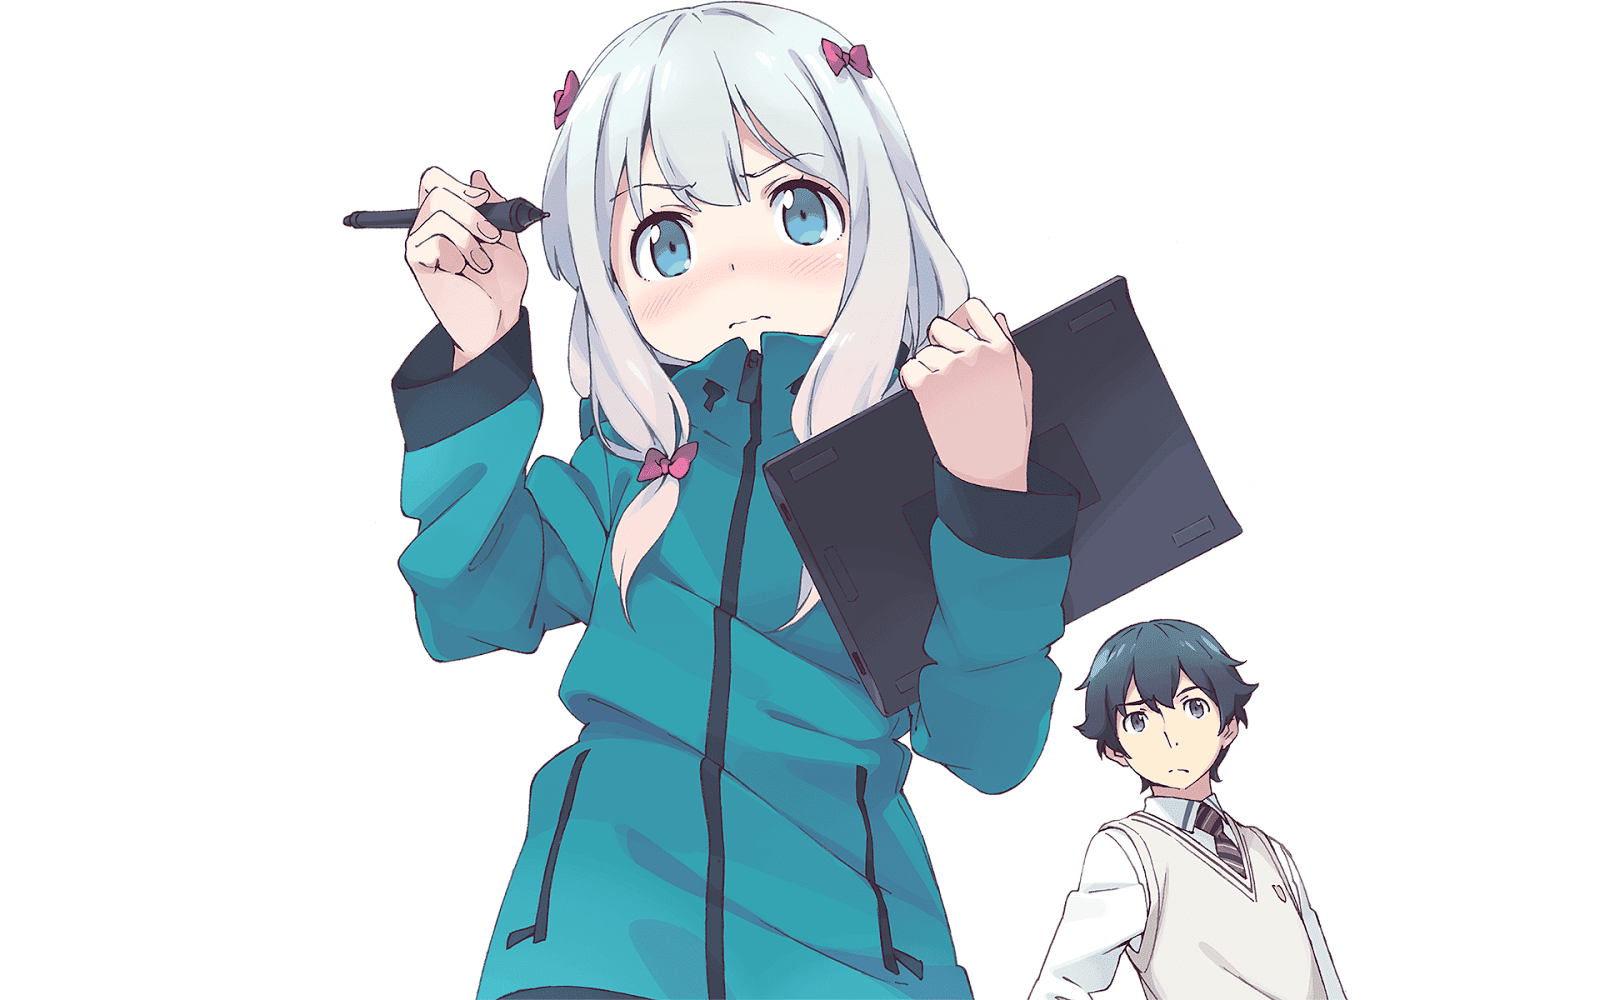 Eromanga Sensei Anime OVA Slated For 2018.